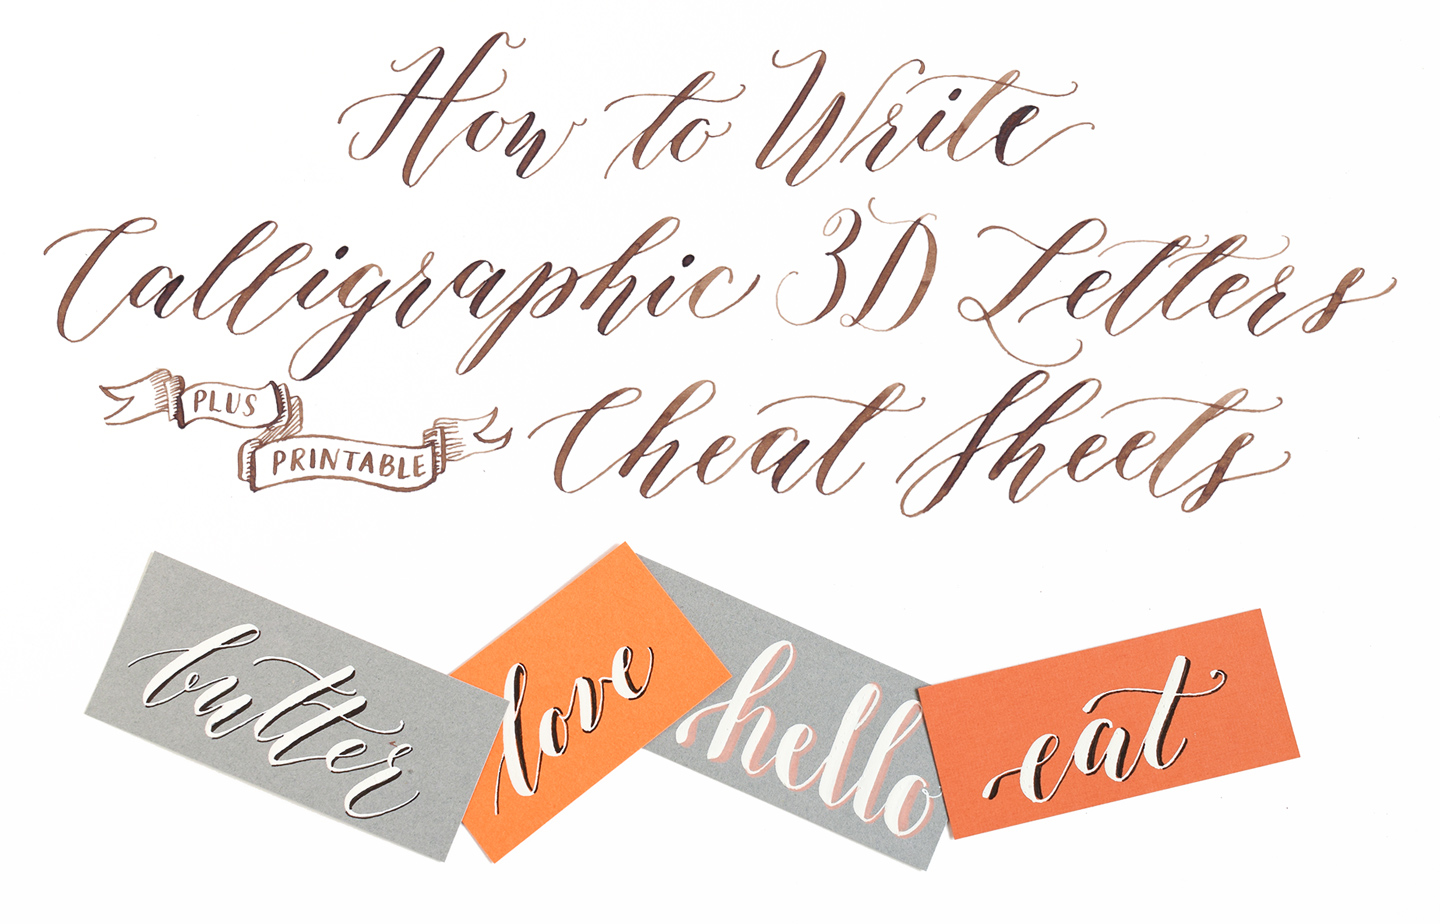 How To Write Calligraphic 3d Letters Printable Cheat